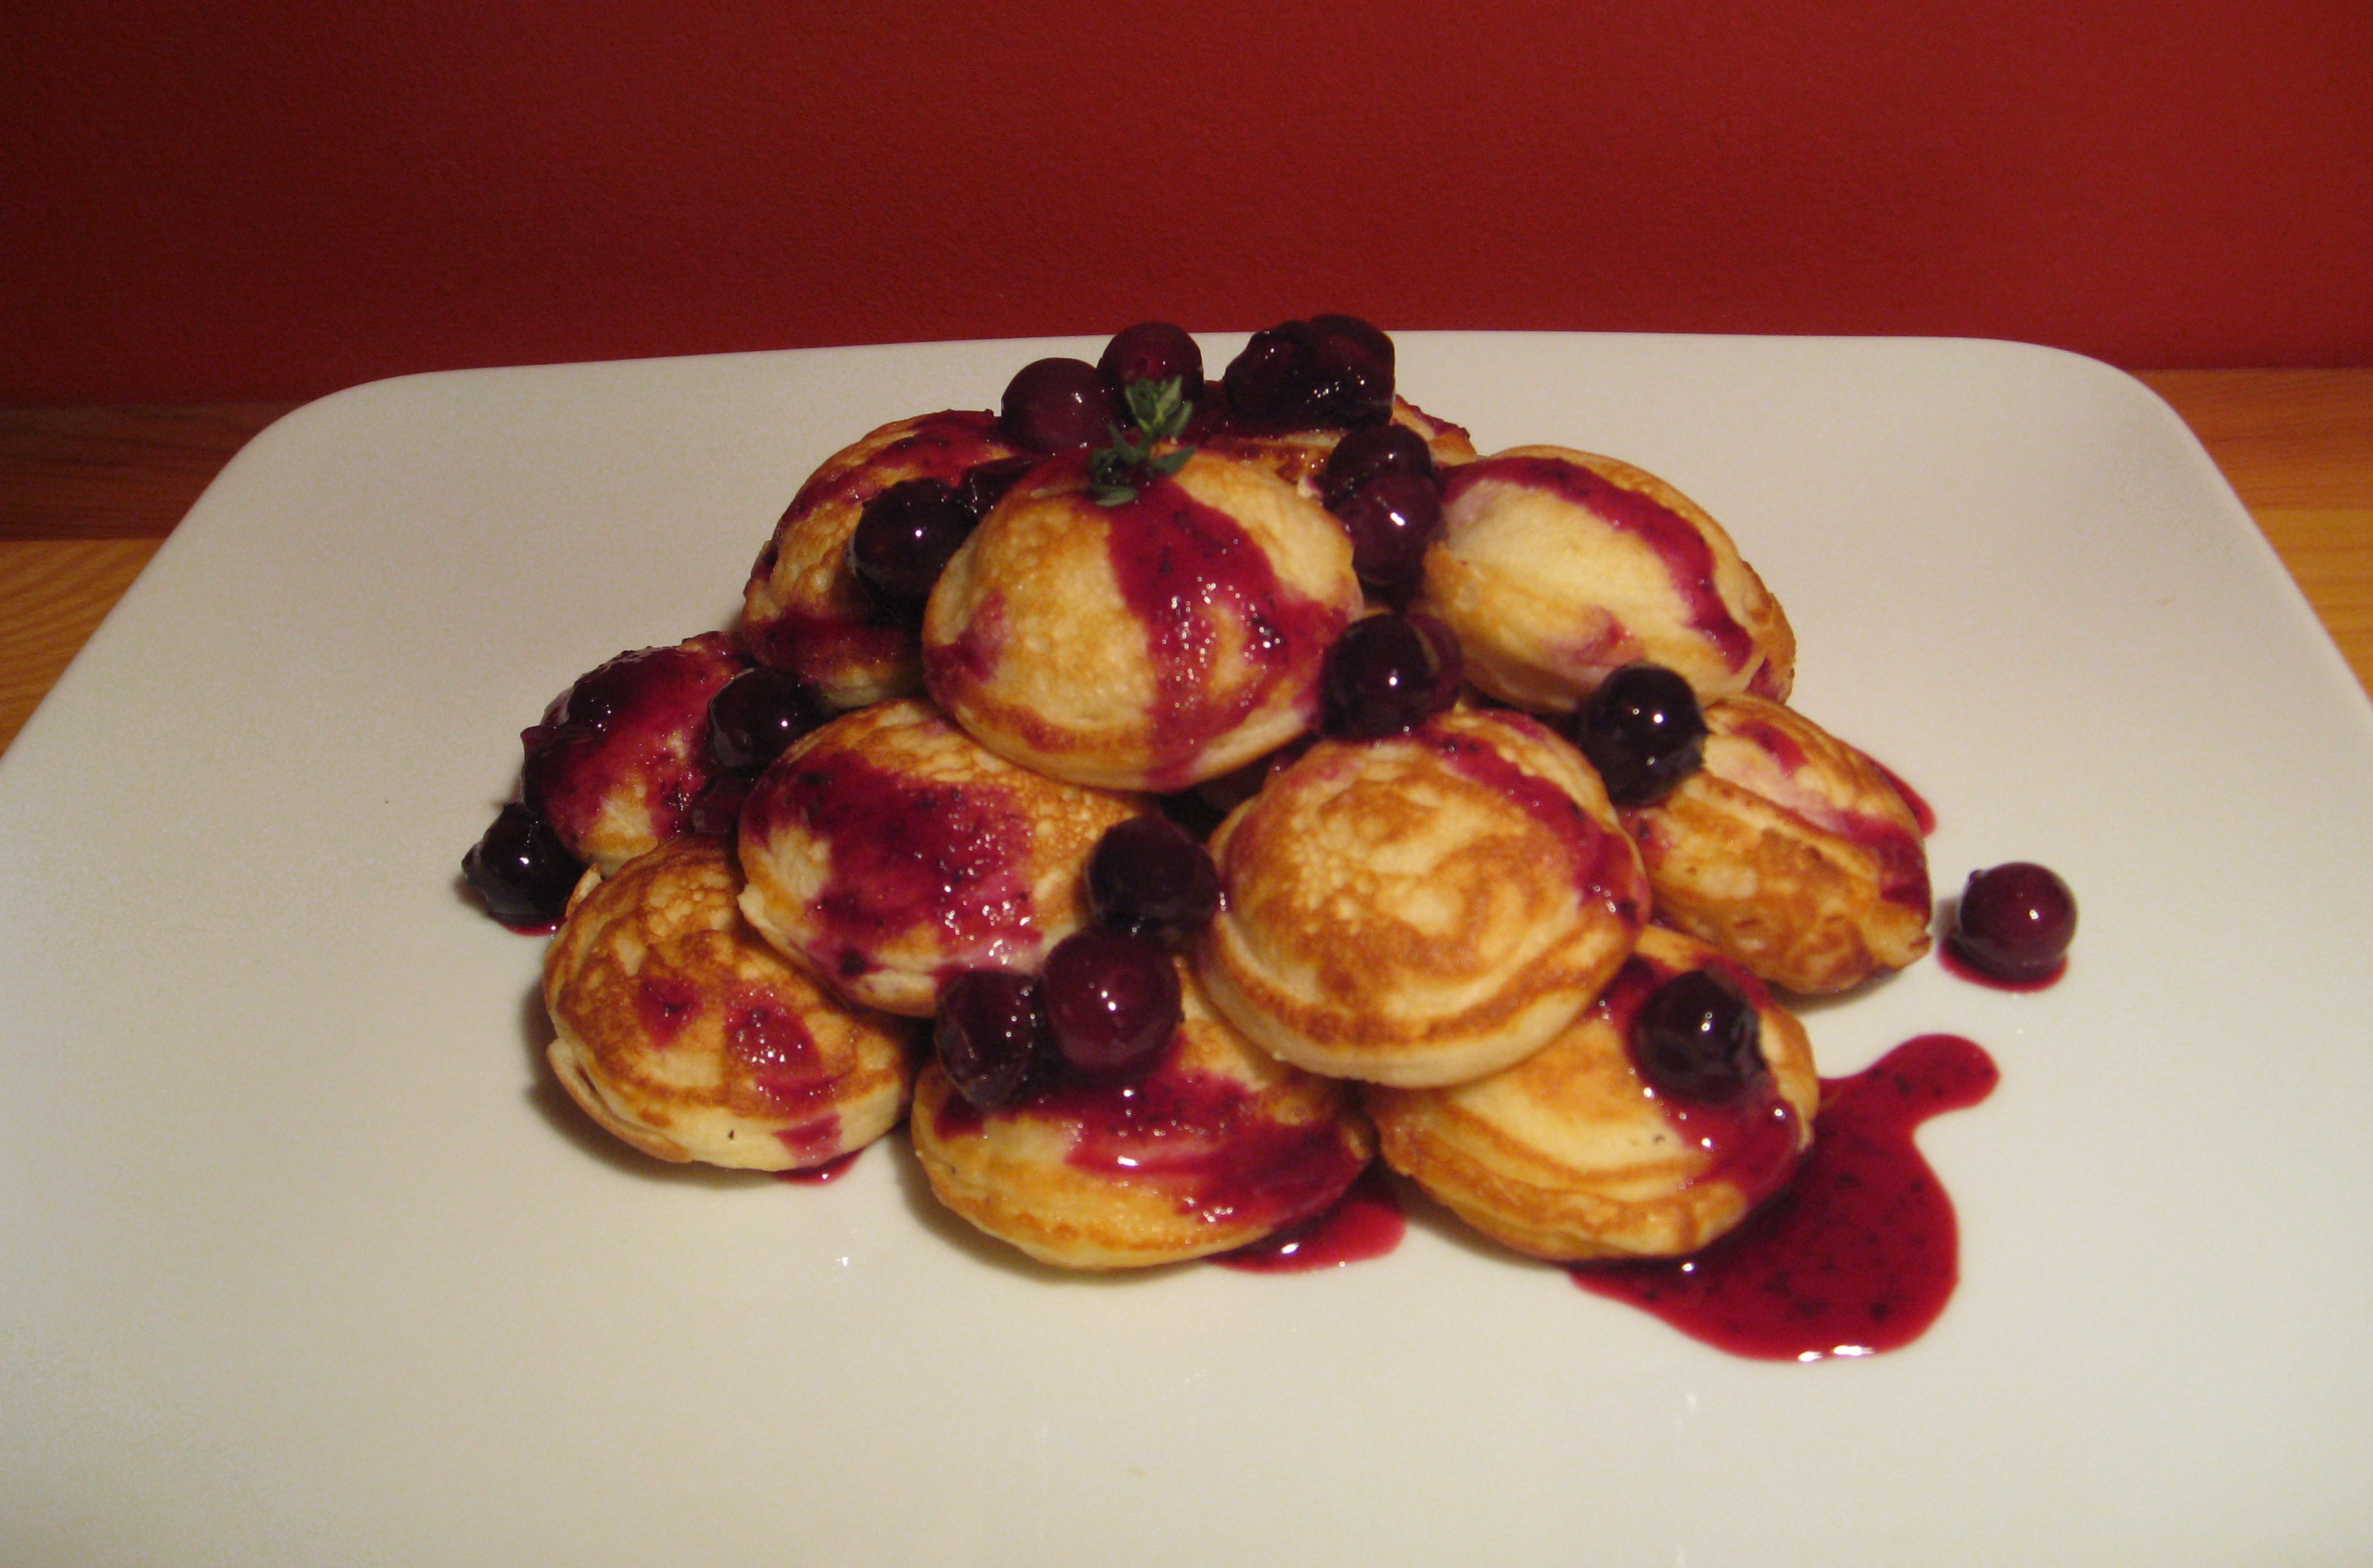 Lemon Mascarpone Stuffed Ebelskivers (Danish Pancakes) with Blueberry Thyme Compote